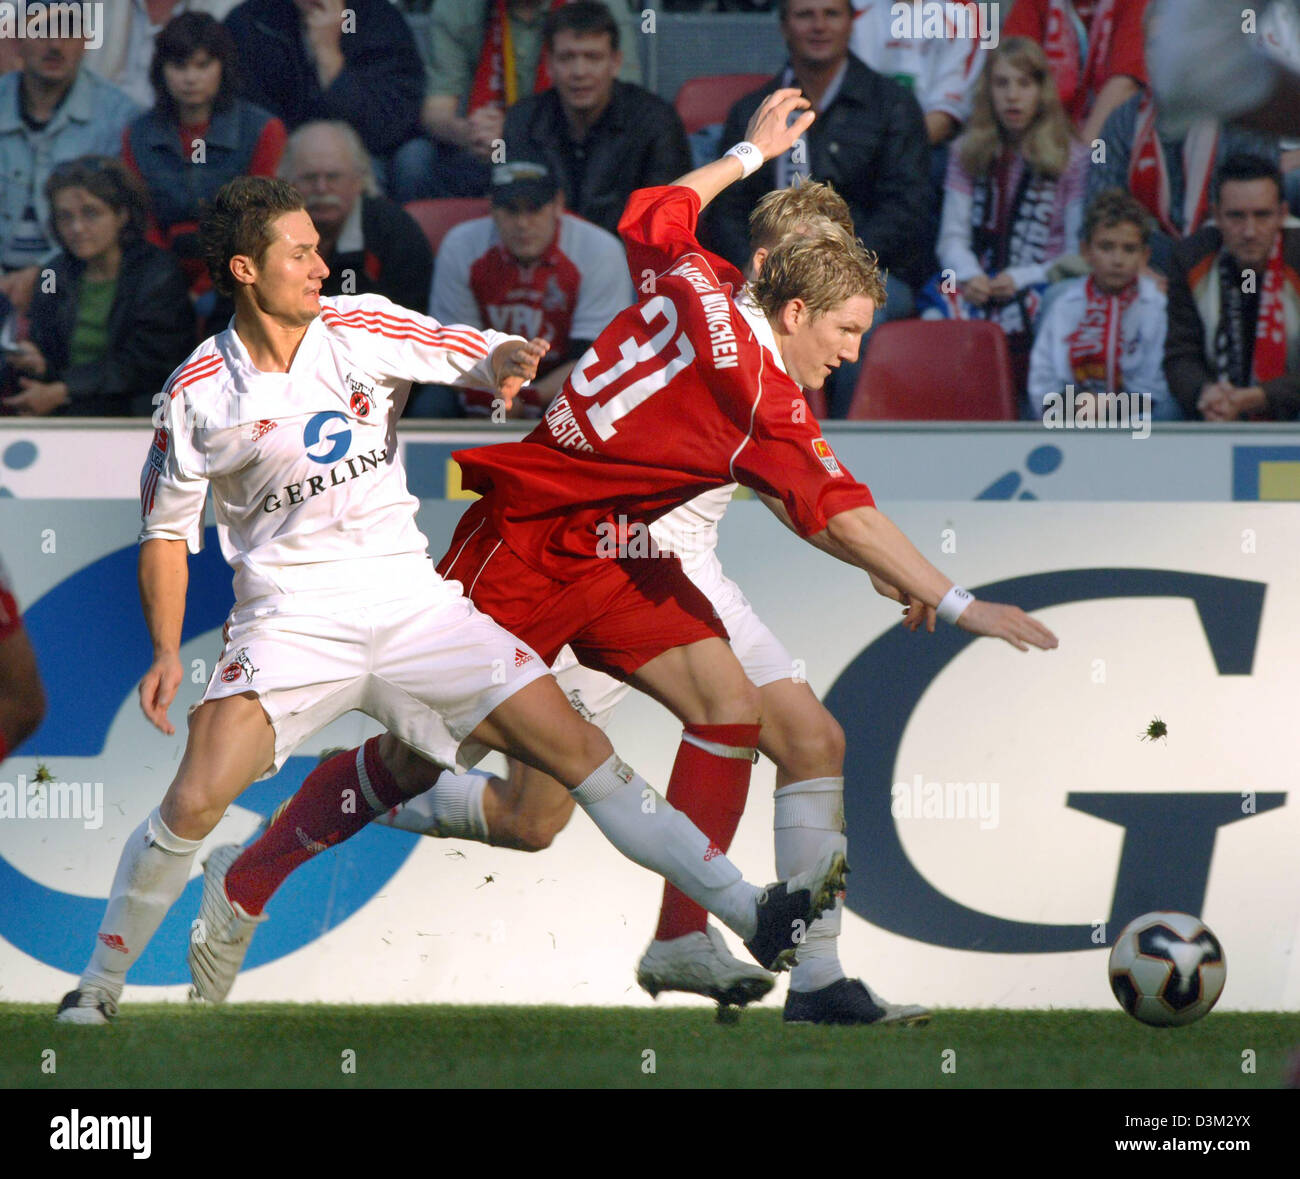 Player of German soccer club Bayern Munich Bastian Schweinsteiger (r) vies for the ball with Cologne player Albert - Stock Image